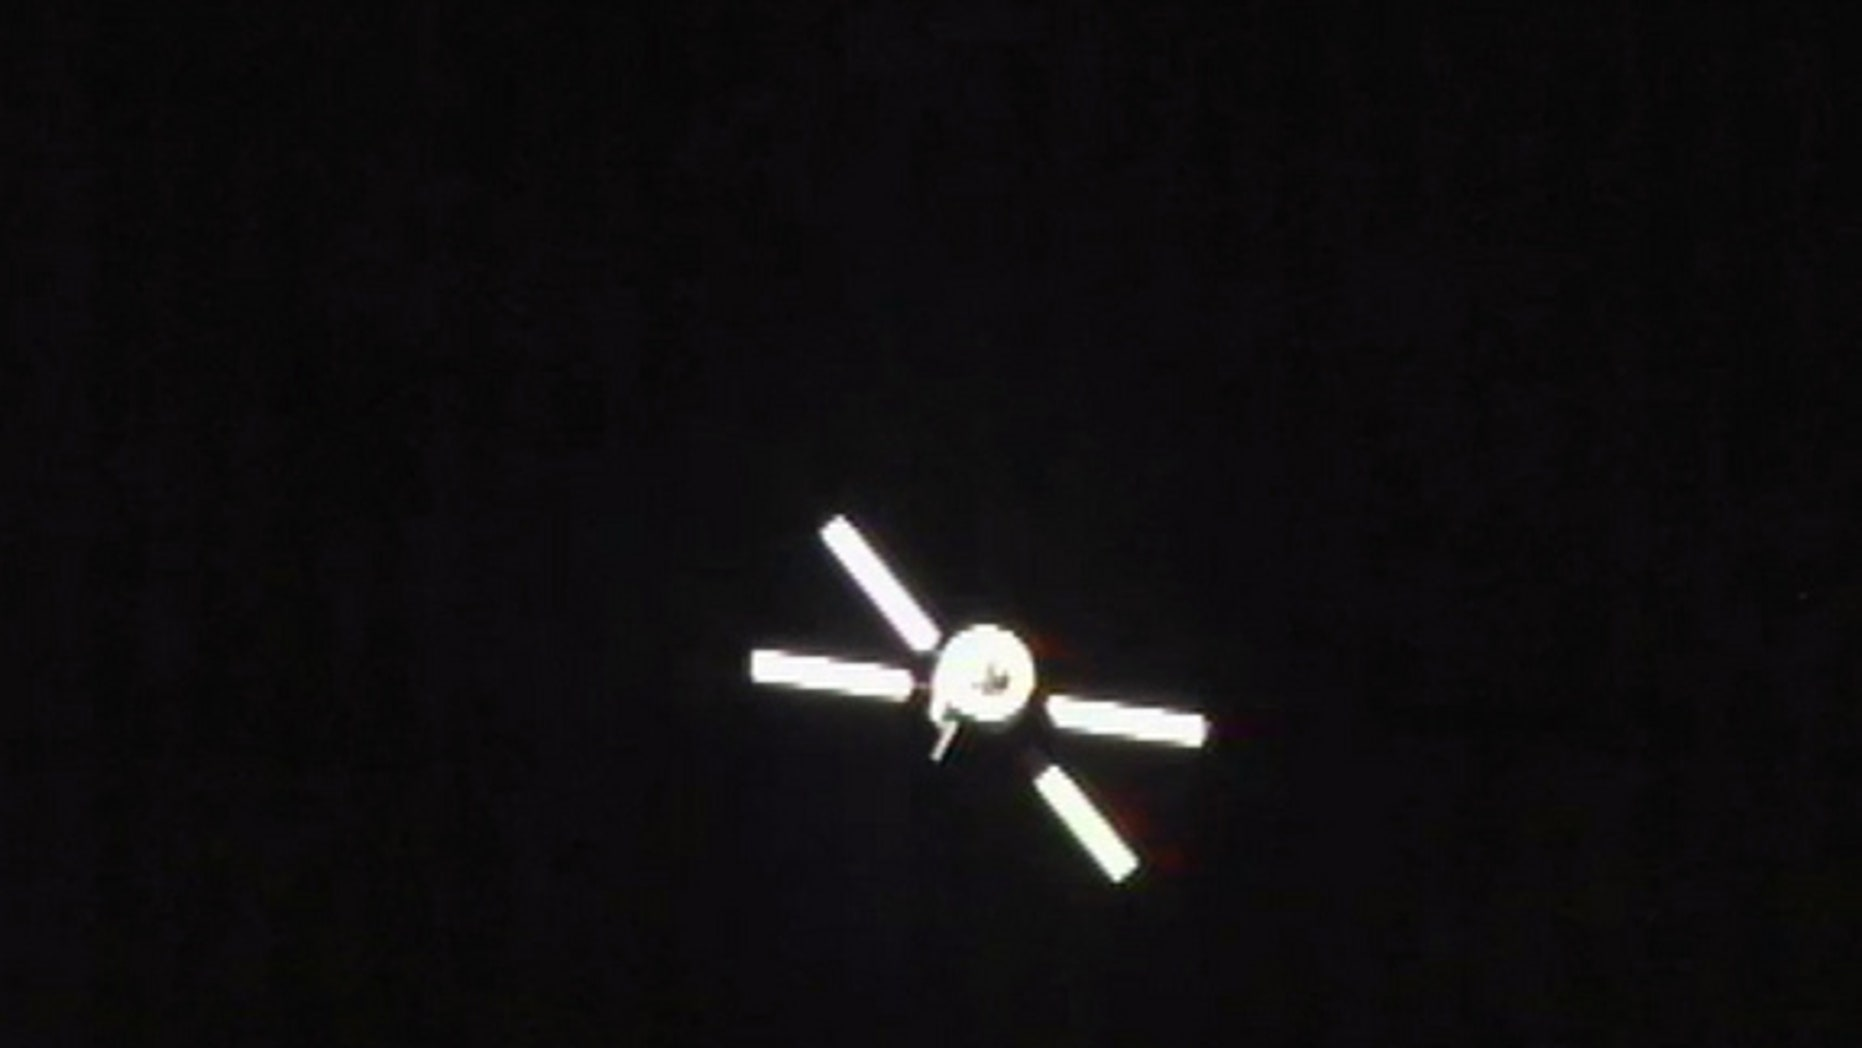 The European Space Agency's ATV-3 Edoardo Amaldi supply ship is seen undocking from the International Space Station on Sept. 28, 2012, in this still image from a video camera on the station.